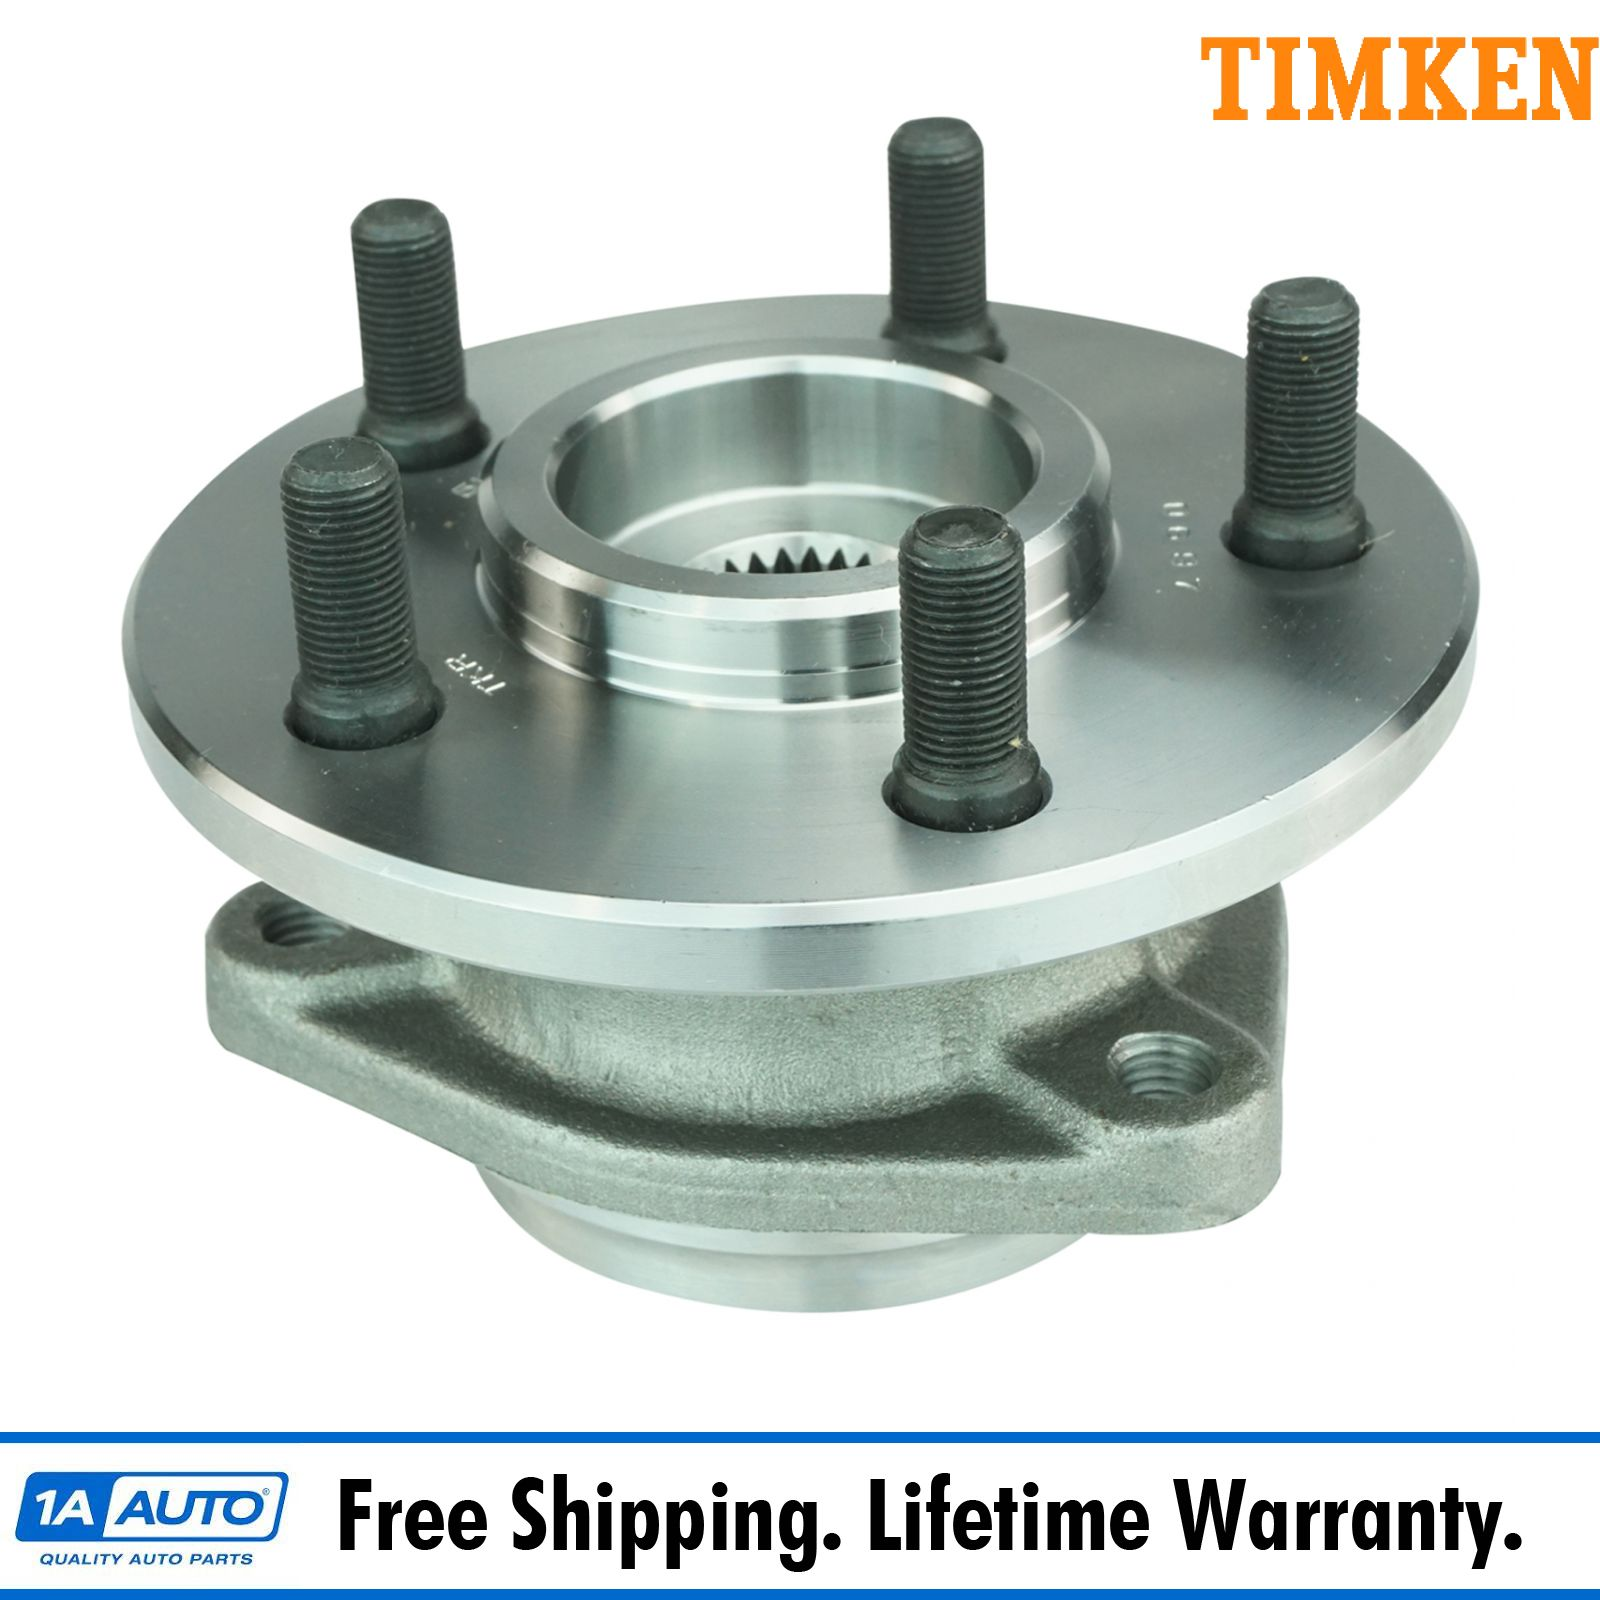 hight resolution of details about timken 513084 4x4 4wd front wheel hub bearing lh or rh for jeep wrangler